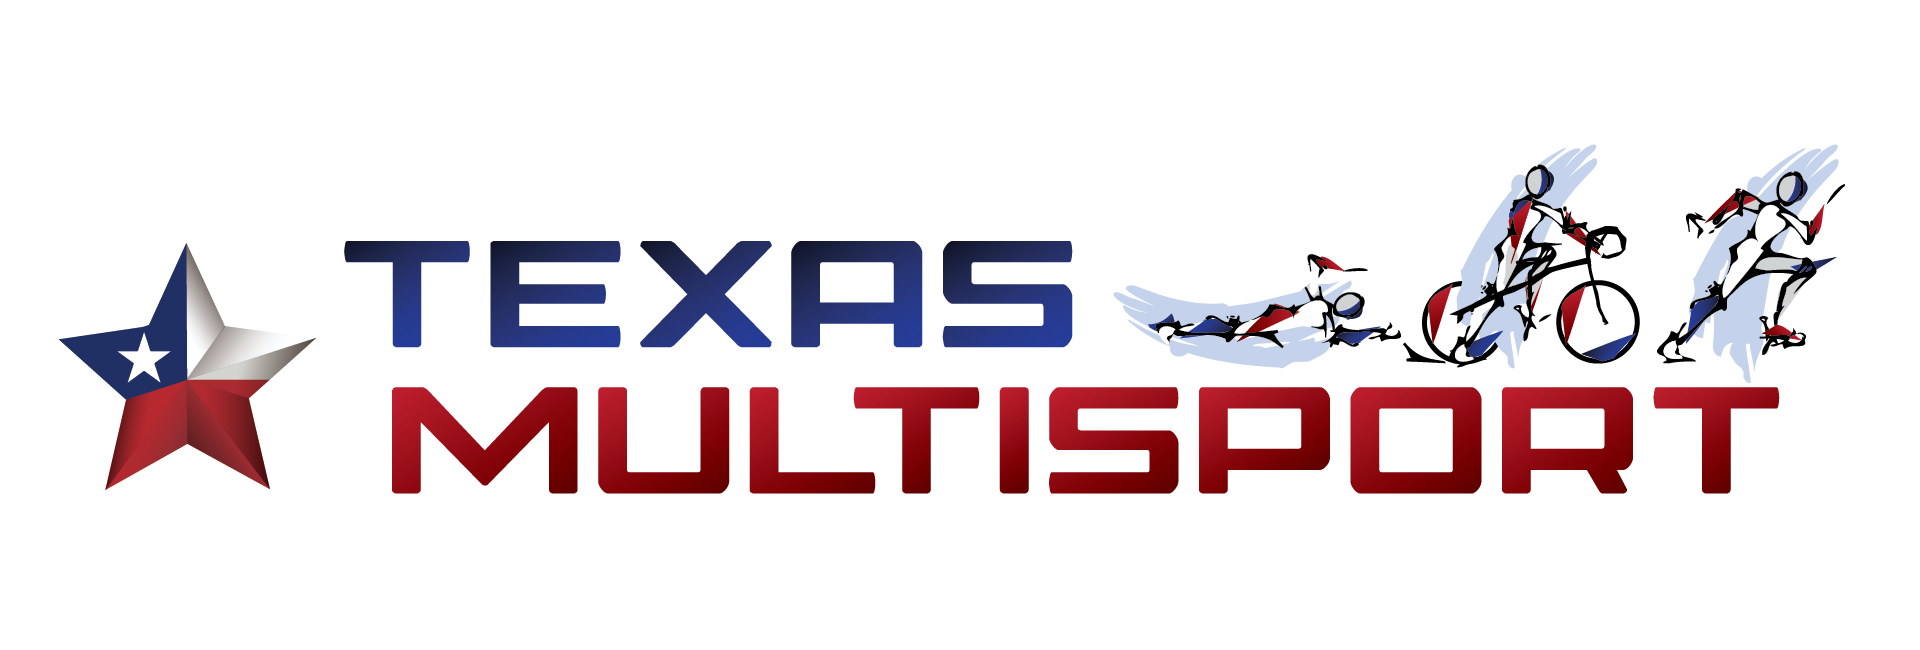 Texas Multisport